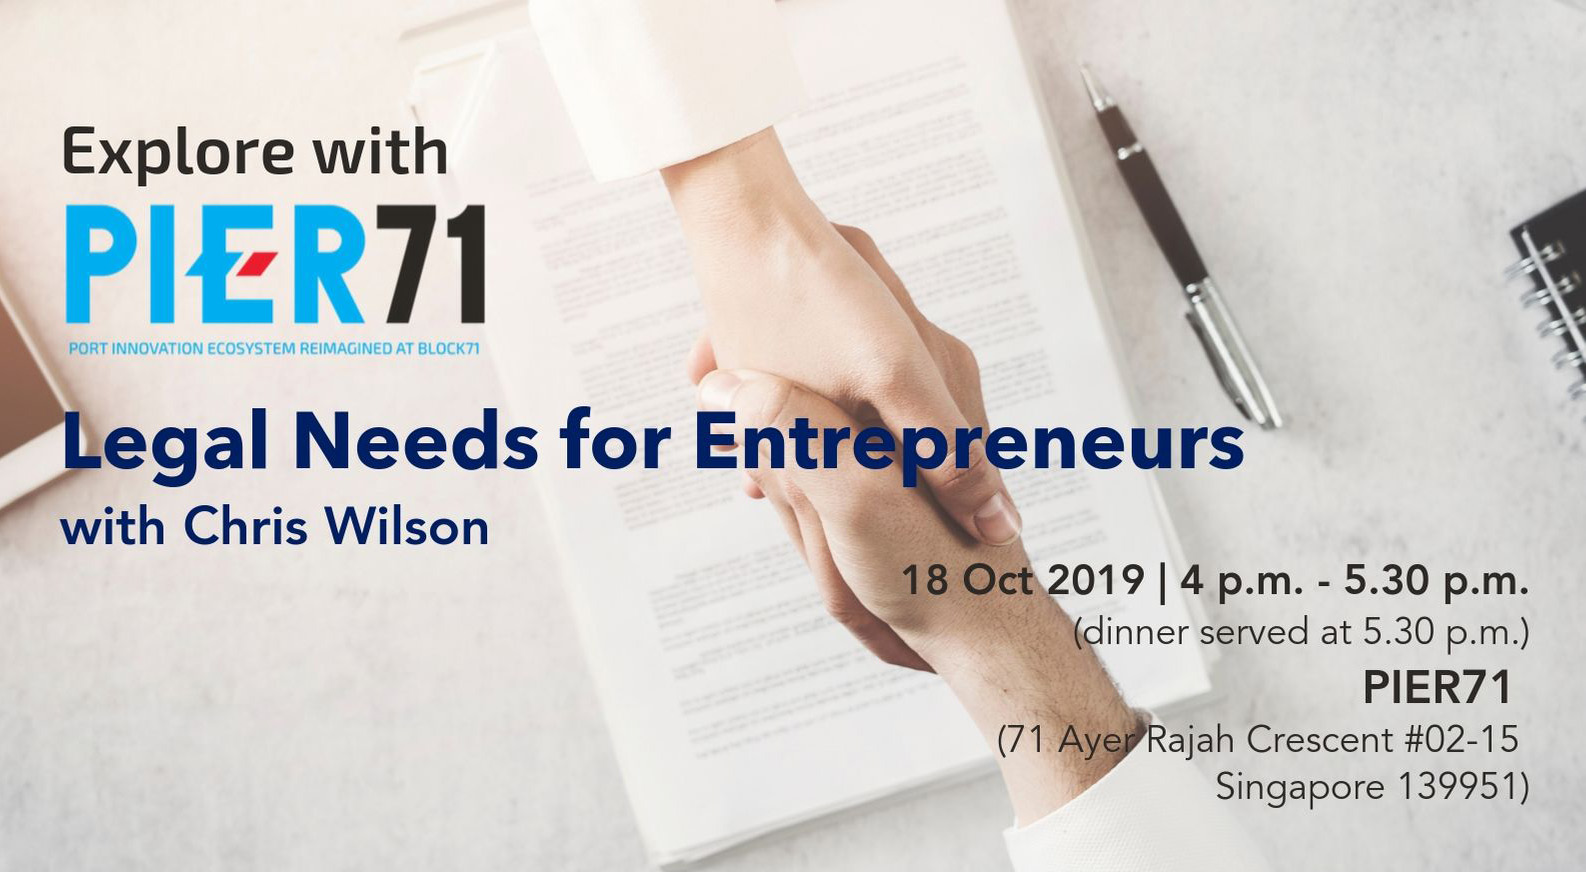 Legal Needs for Entrepreneurs with Chris Wilson